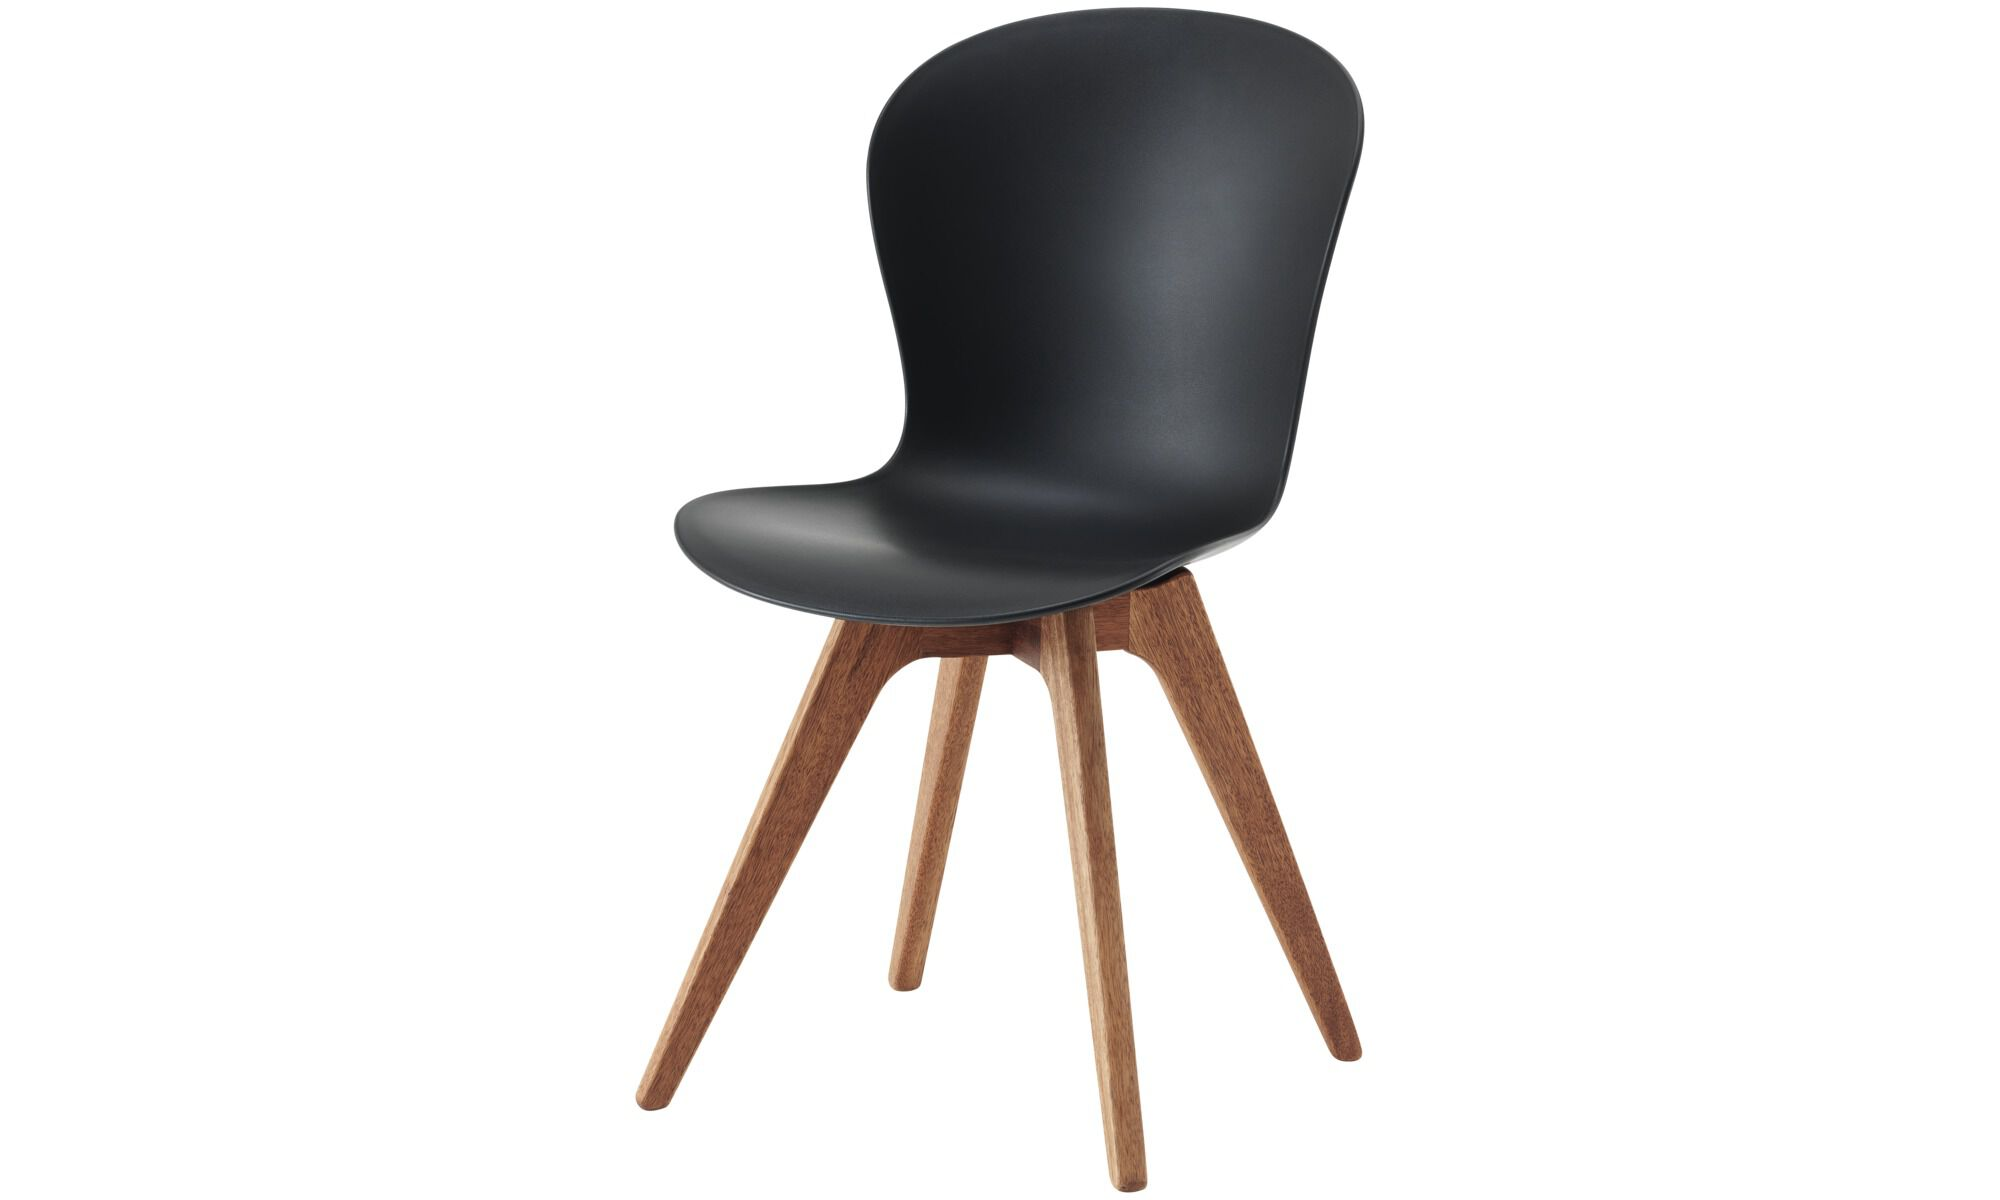 Outdoor Chairs   Adelaide Chair (for In  And Outdoor Use)   Black